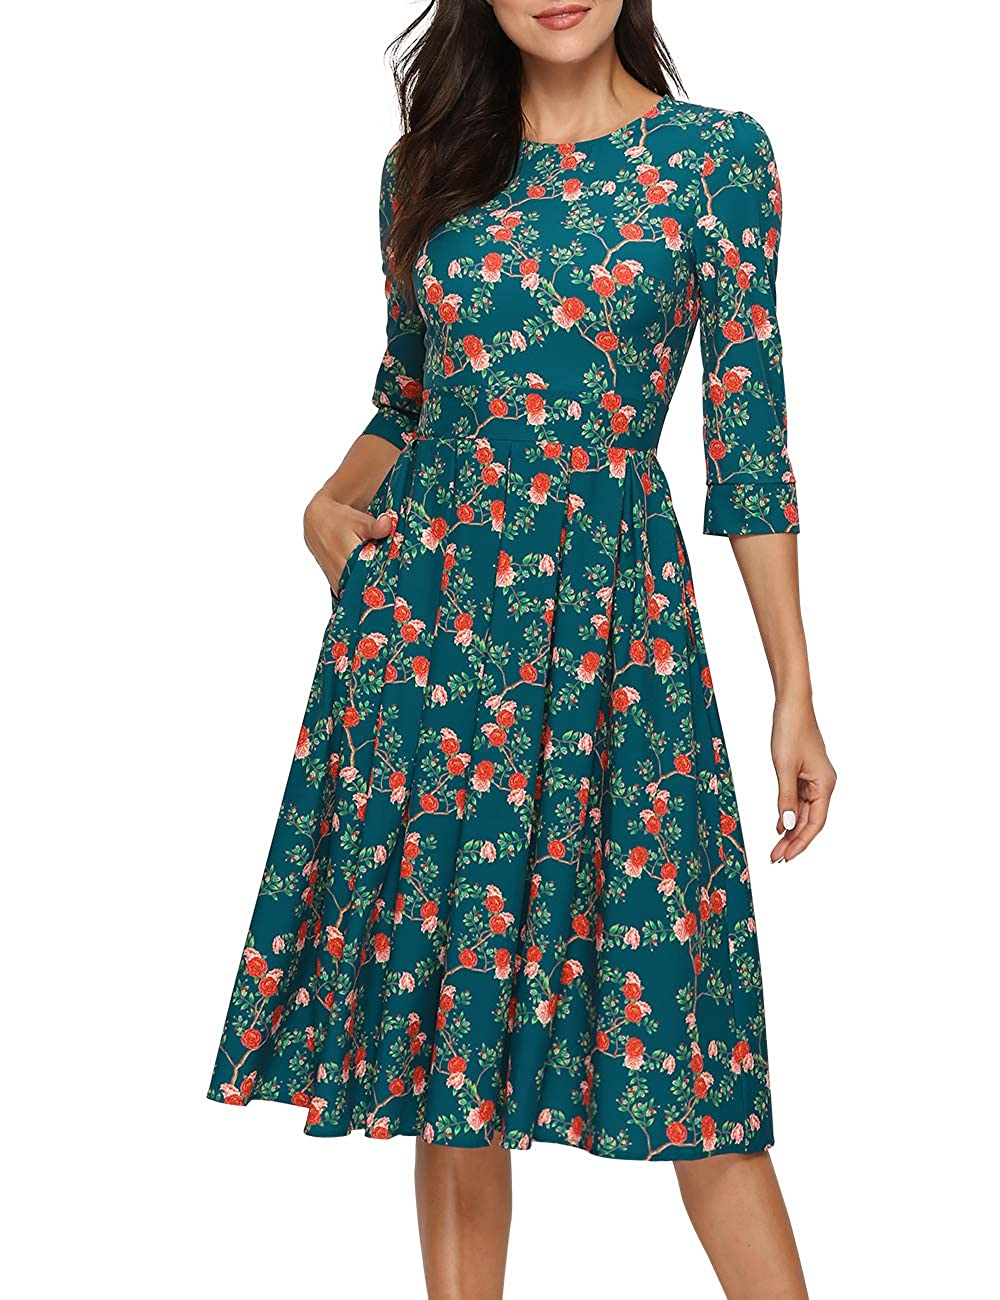 1940s Dresses | 40s Dress, Swing Dress Simple Flavor Womens Floral Vintage Dress Elegant Midi Evening Dress 3/4 Sleeves $26.99 AT vintagedancer.com